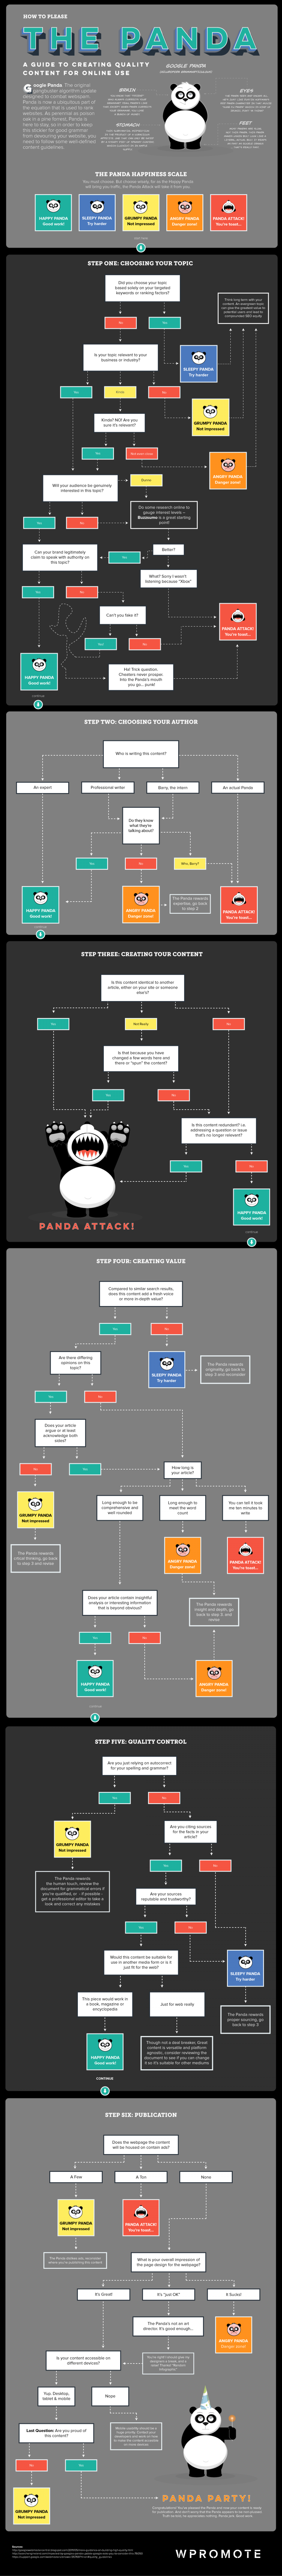 """How To Write Google """"Panda-Proof"""" Content (Flowchart) Infographic"""